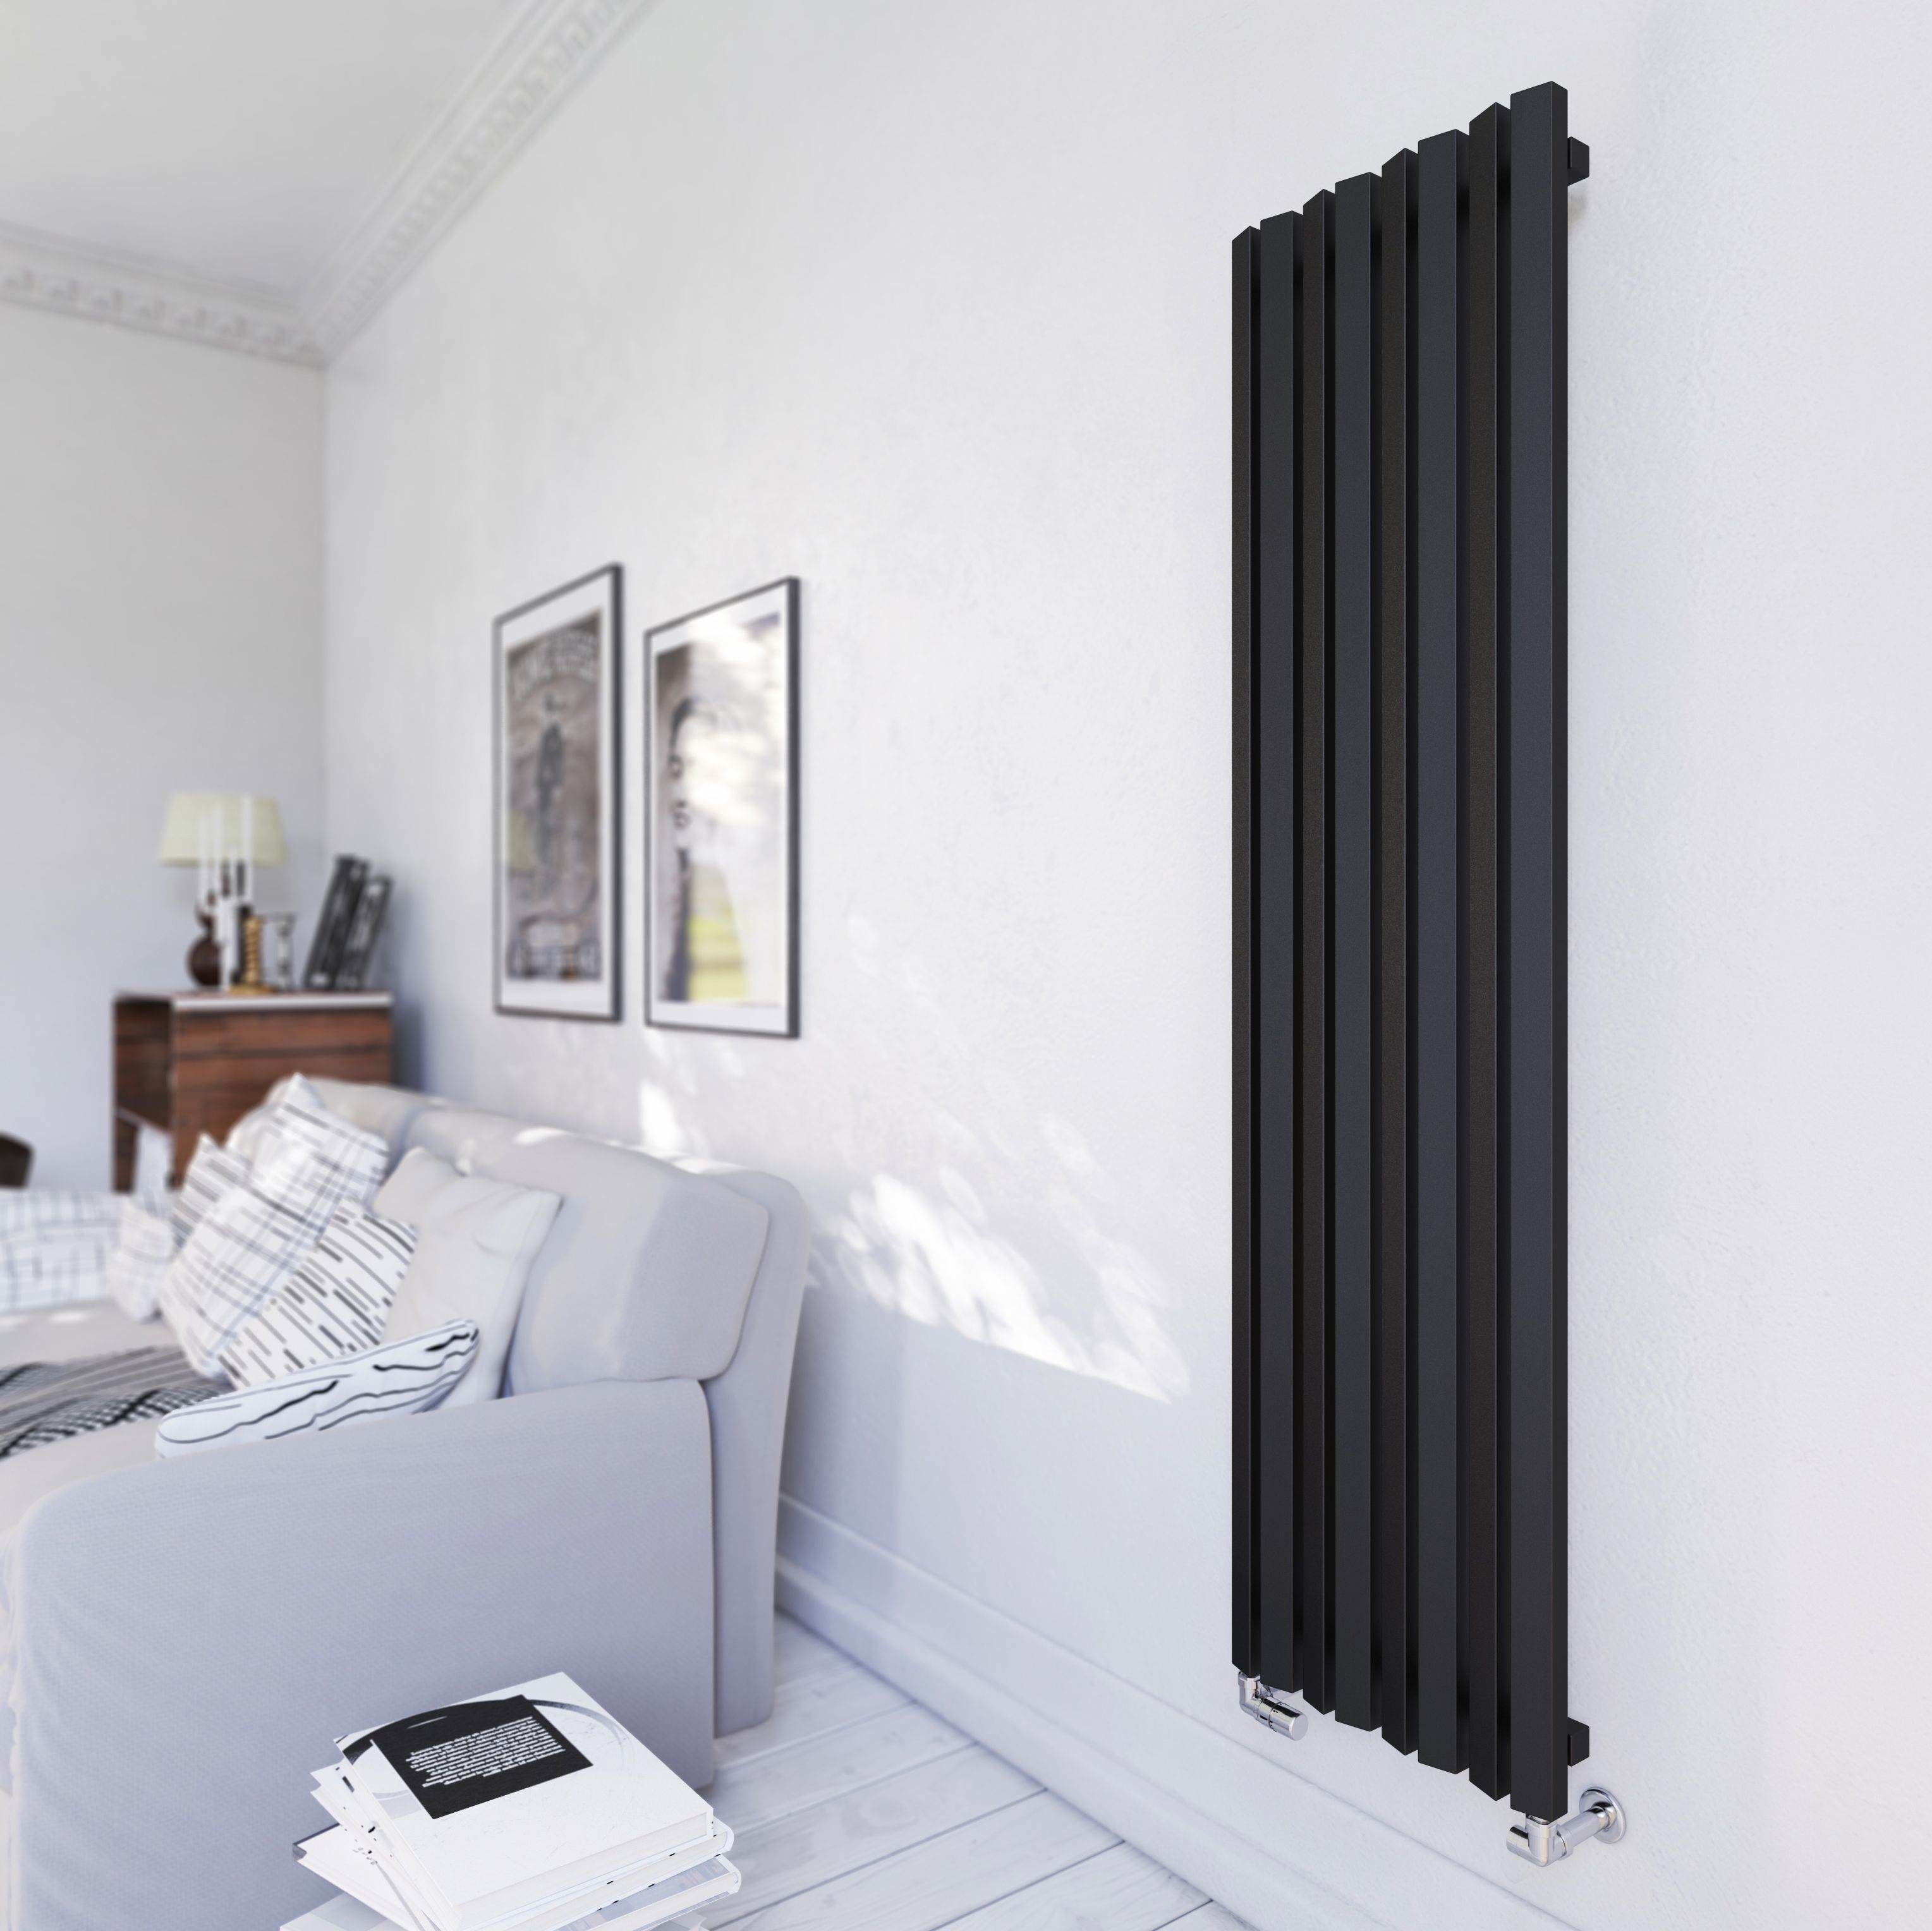 Terma Durham Vertical Radiator Metallic Black Textured (H)1600 Mm (W)425